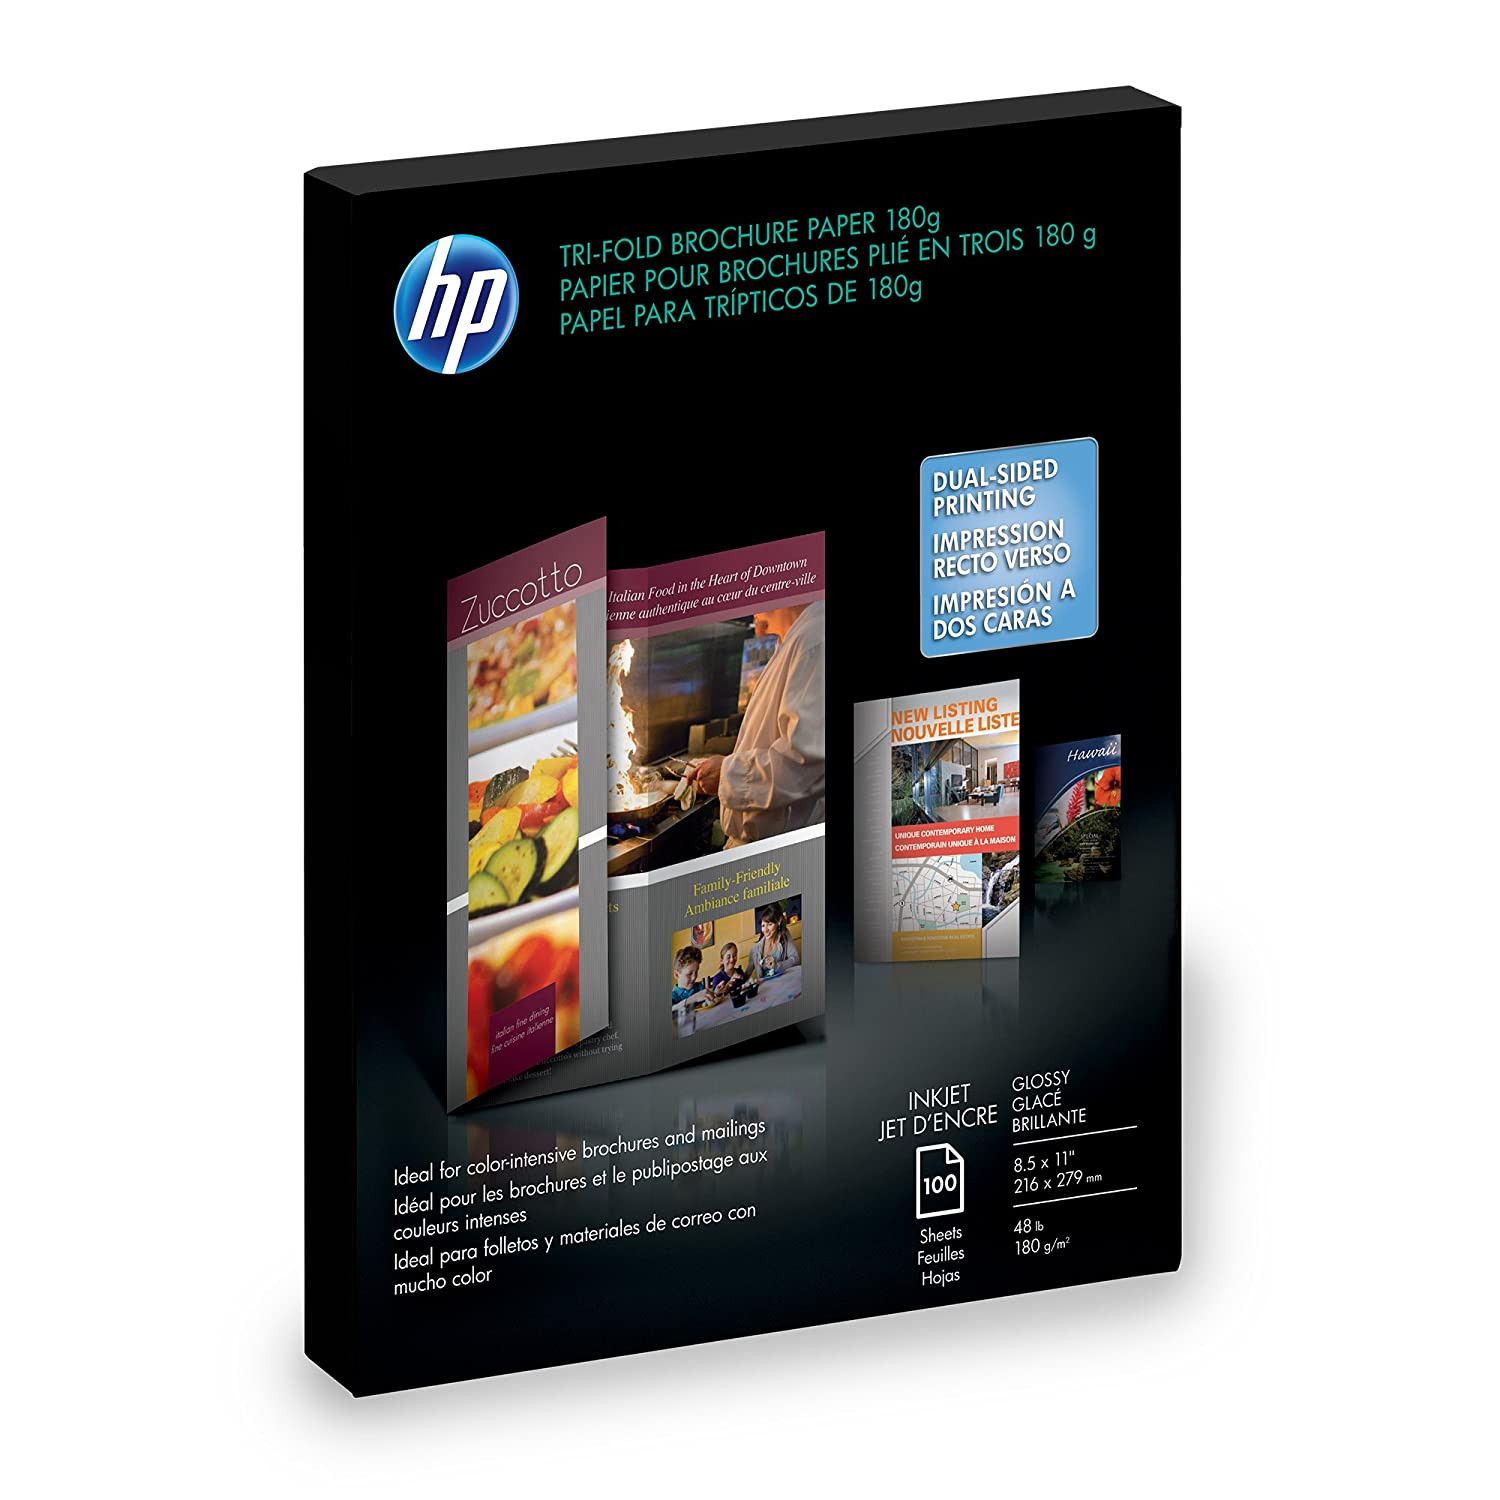 HP Tri-fold Brochure Paper, Glossy (100 Sheets, 8.5 x 11 Inches) Hp - Hp Paper C7020A Office Supplies